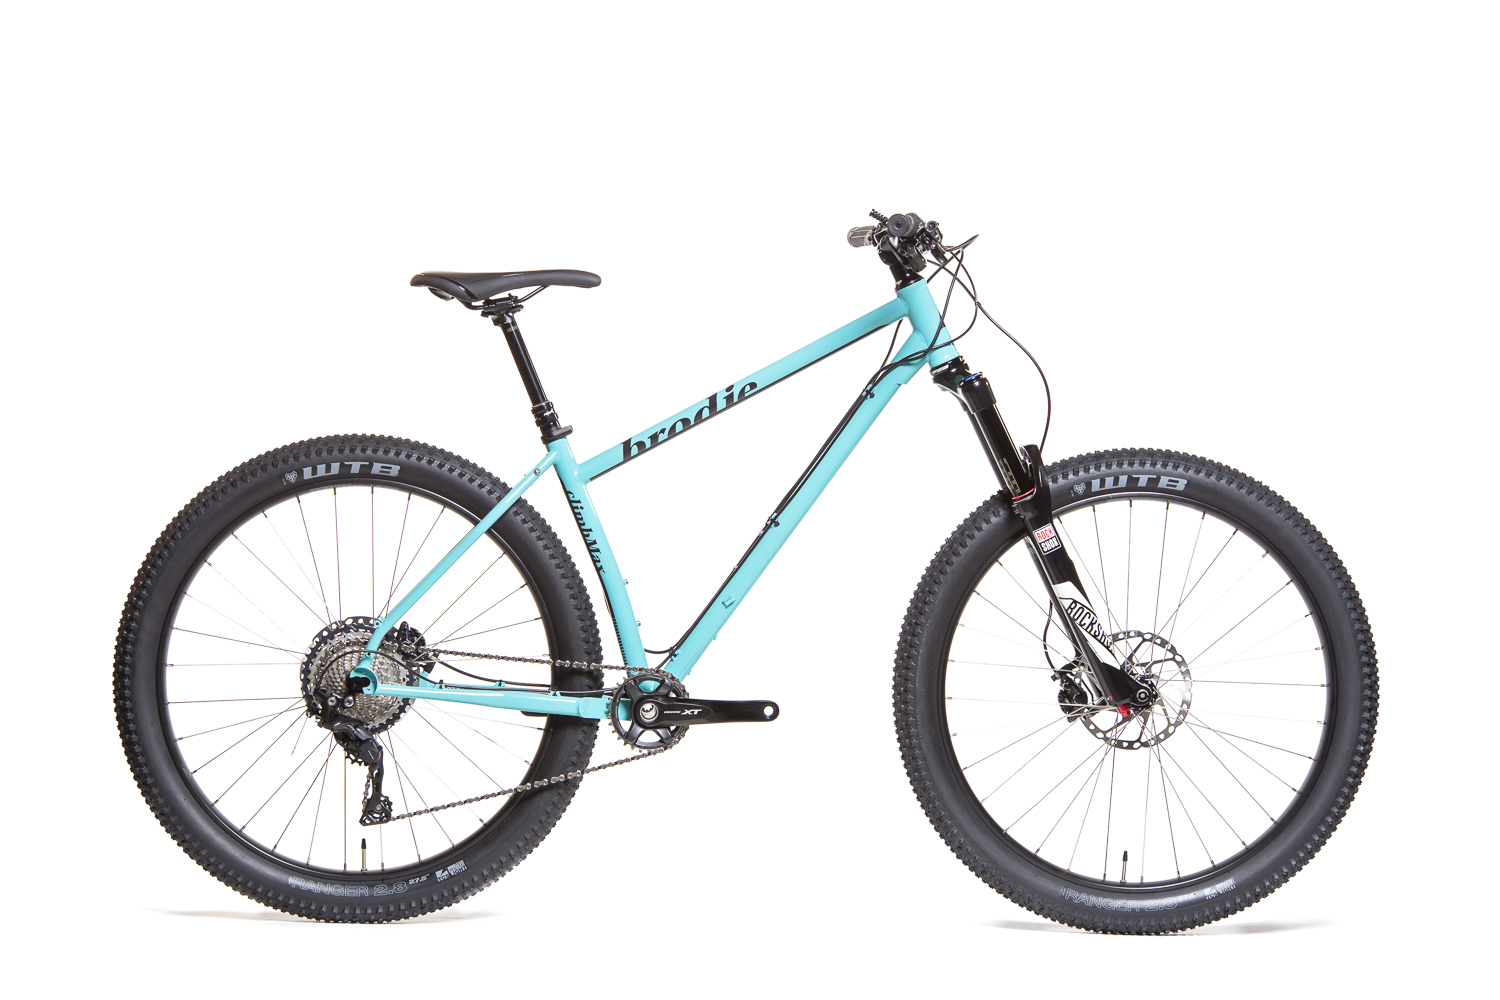 Have a look at the ClimbMax SE also in our Mountain Bike Series - $3999